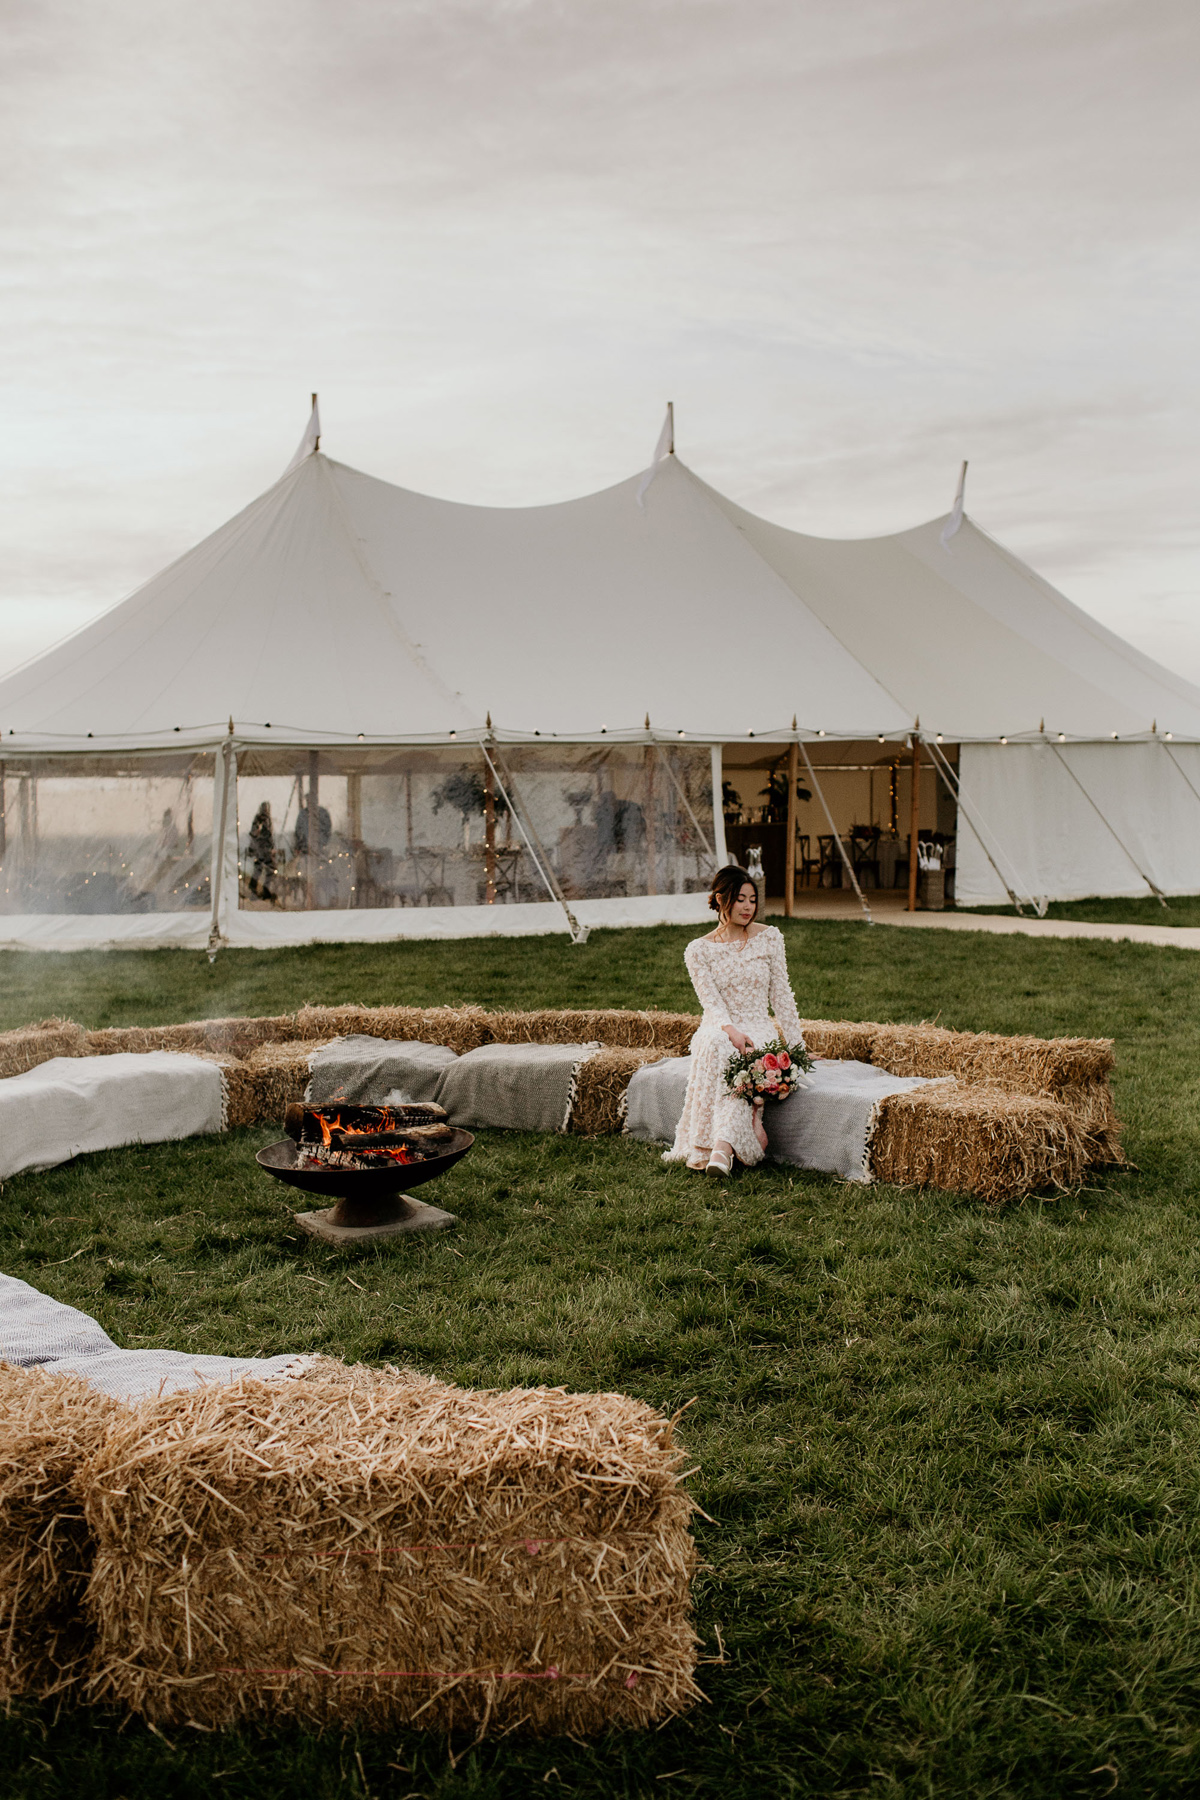 Ethical outdoor wedding sailcloth tent - Ethical and Sustainable Marquee Wedding Style That Respects The Environment